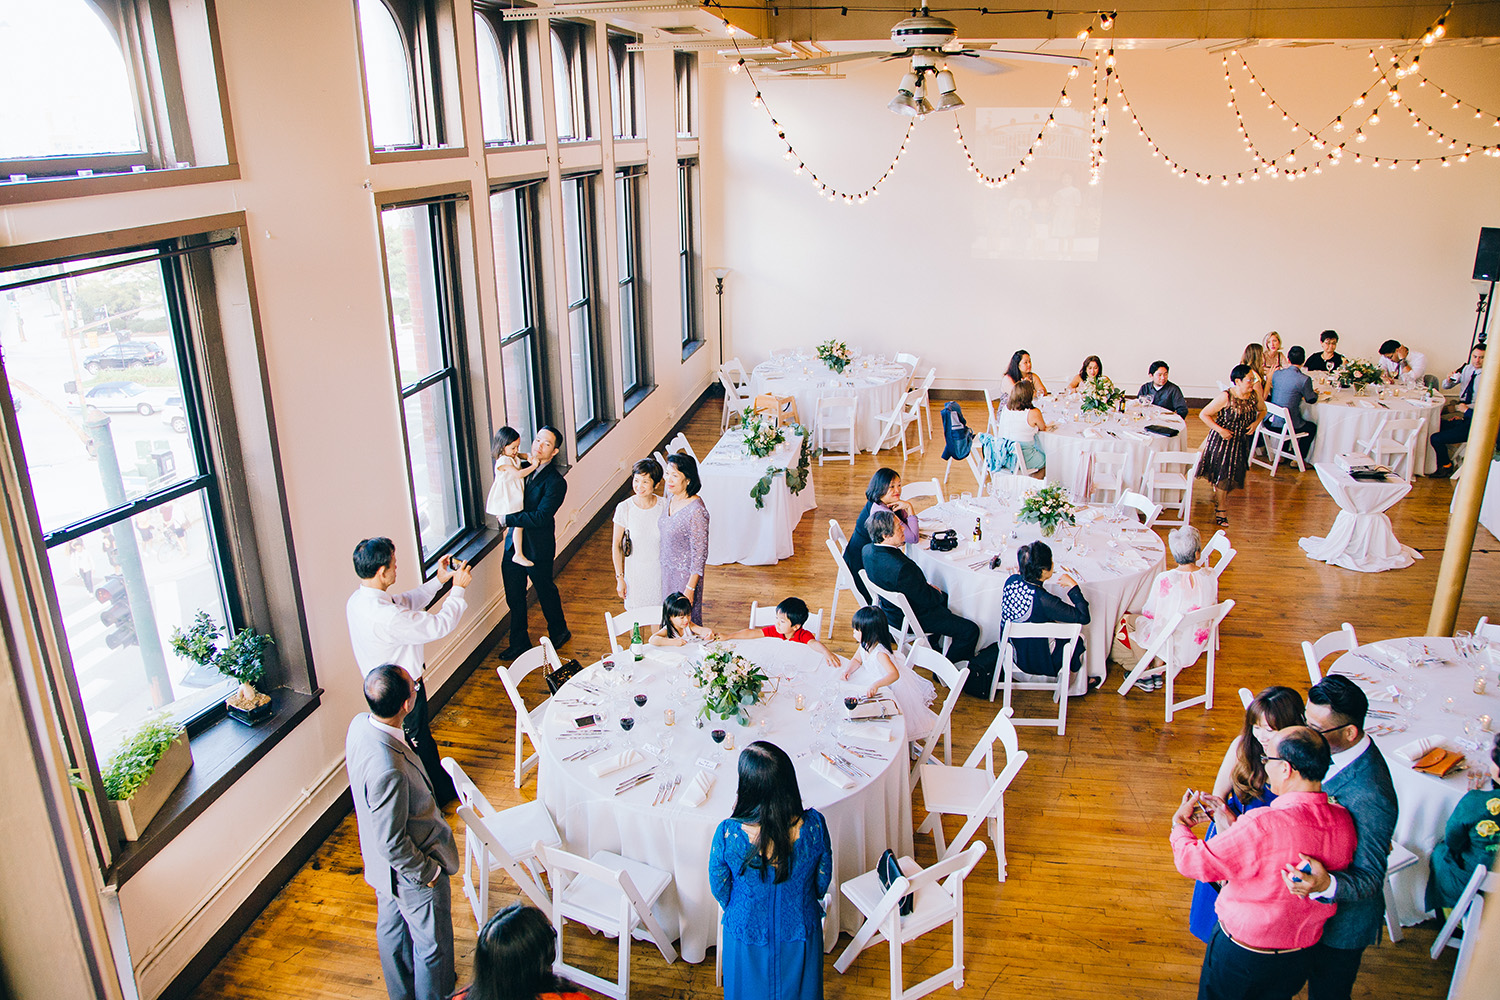 What Are the Rates? - Our services are customized for each couple, primarily based on group size, amount of time, and services included. Costs will vary from one wedding to the next, depending on the plans. But in general, for 20 to 60 people, costs can range anywhere from $4,000 to $20,000.